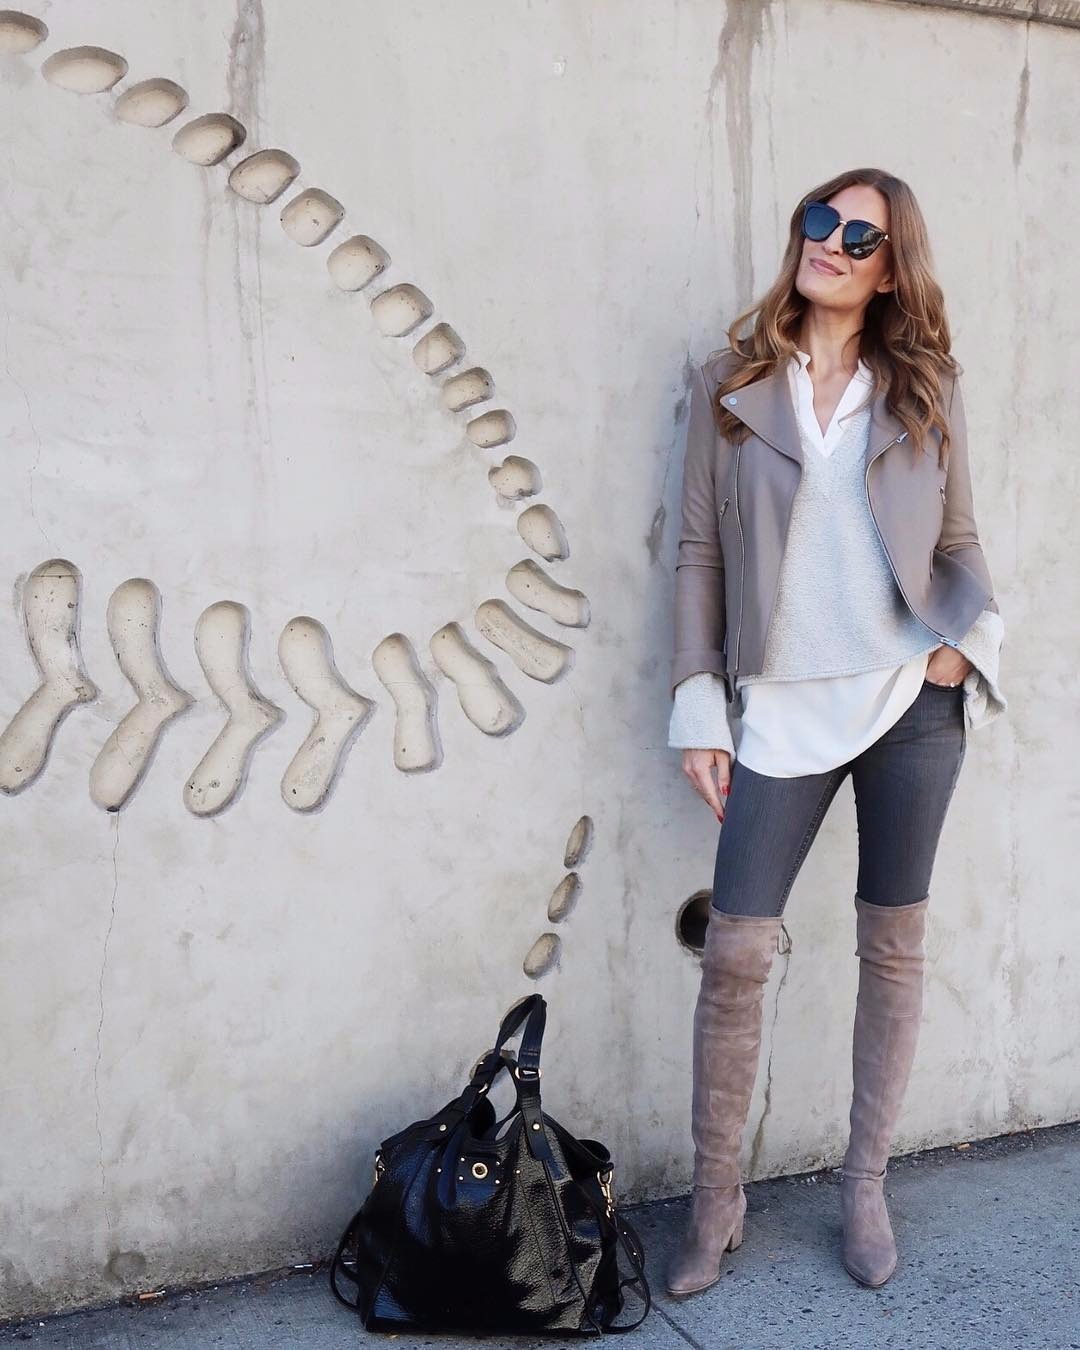 Laura Behnke is dressed up in all shades of gray from her coat to her boots. She has got a tall height and slim body. She is looking up with her sunglasses on.